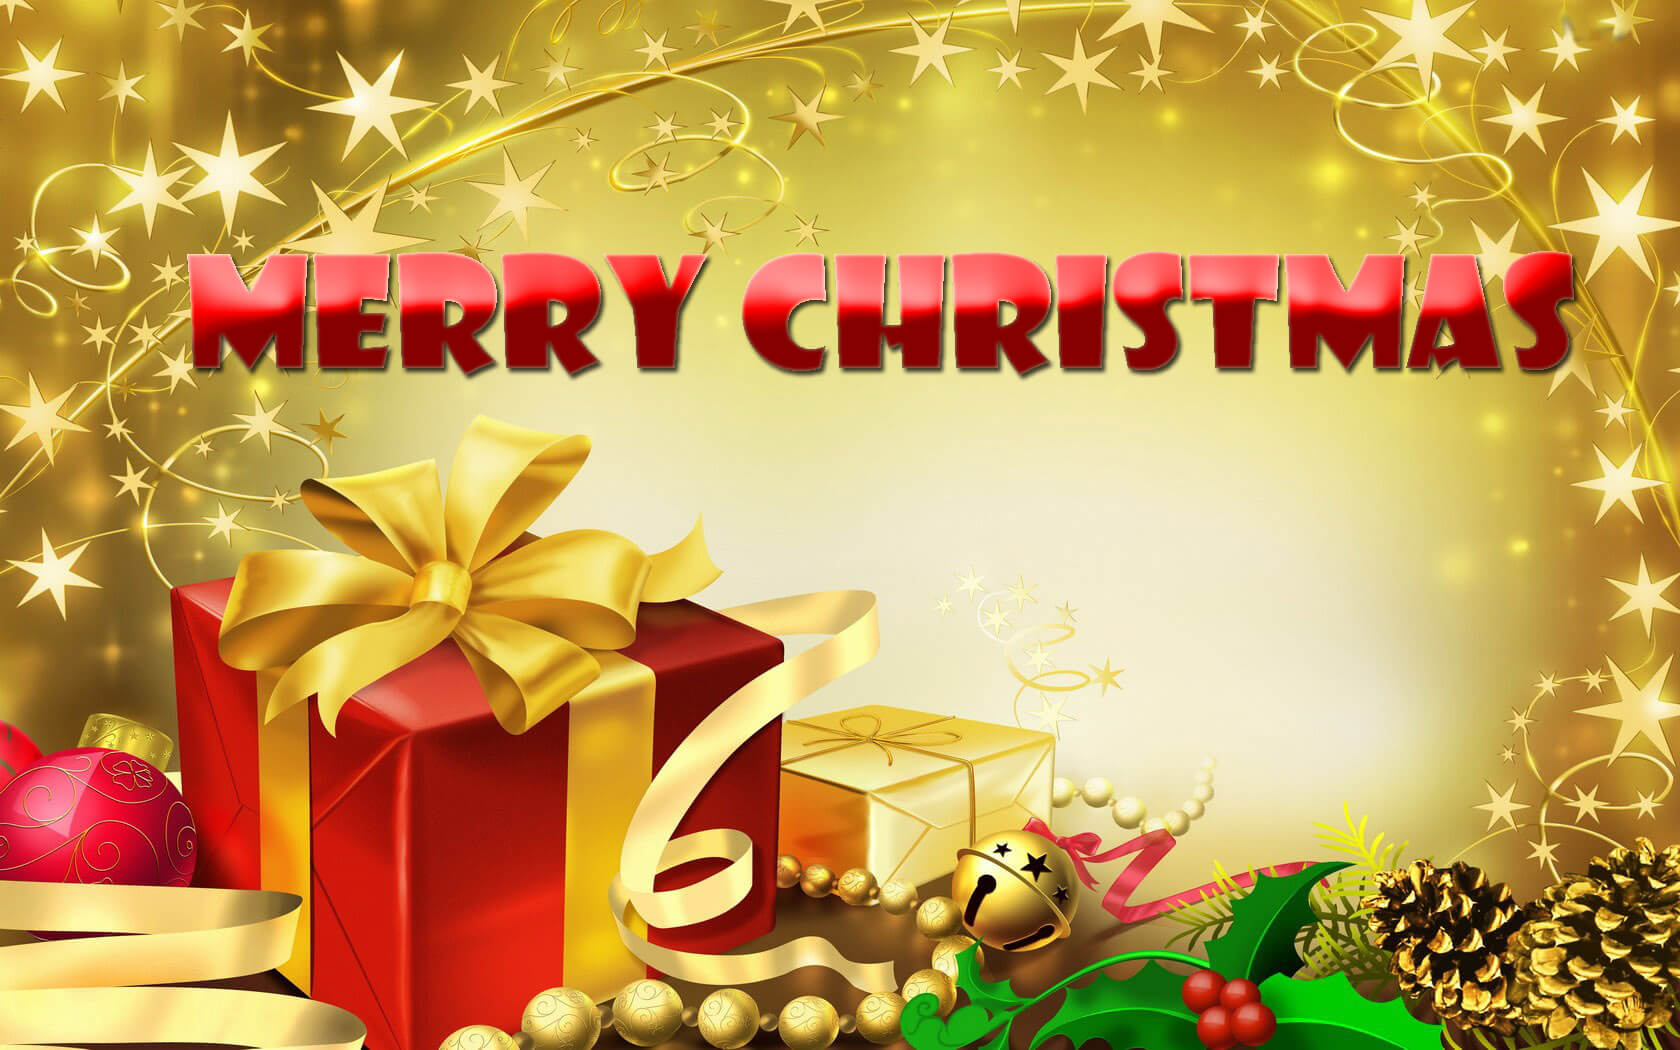 Merry Christmas Wallpaper Full Hd